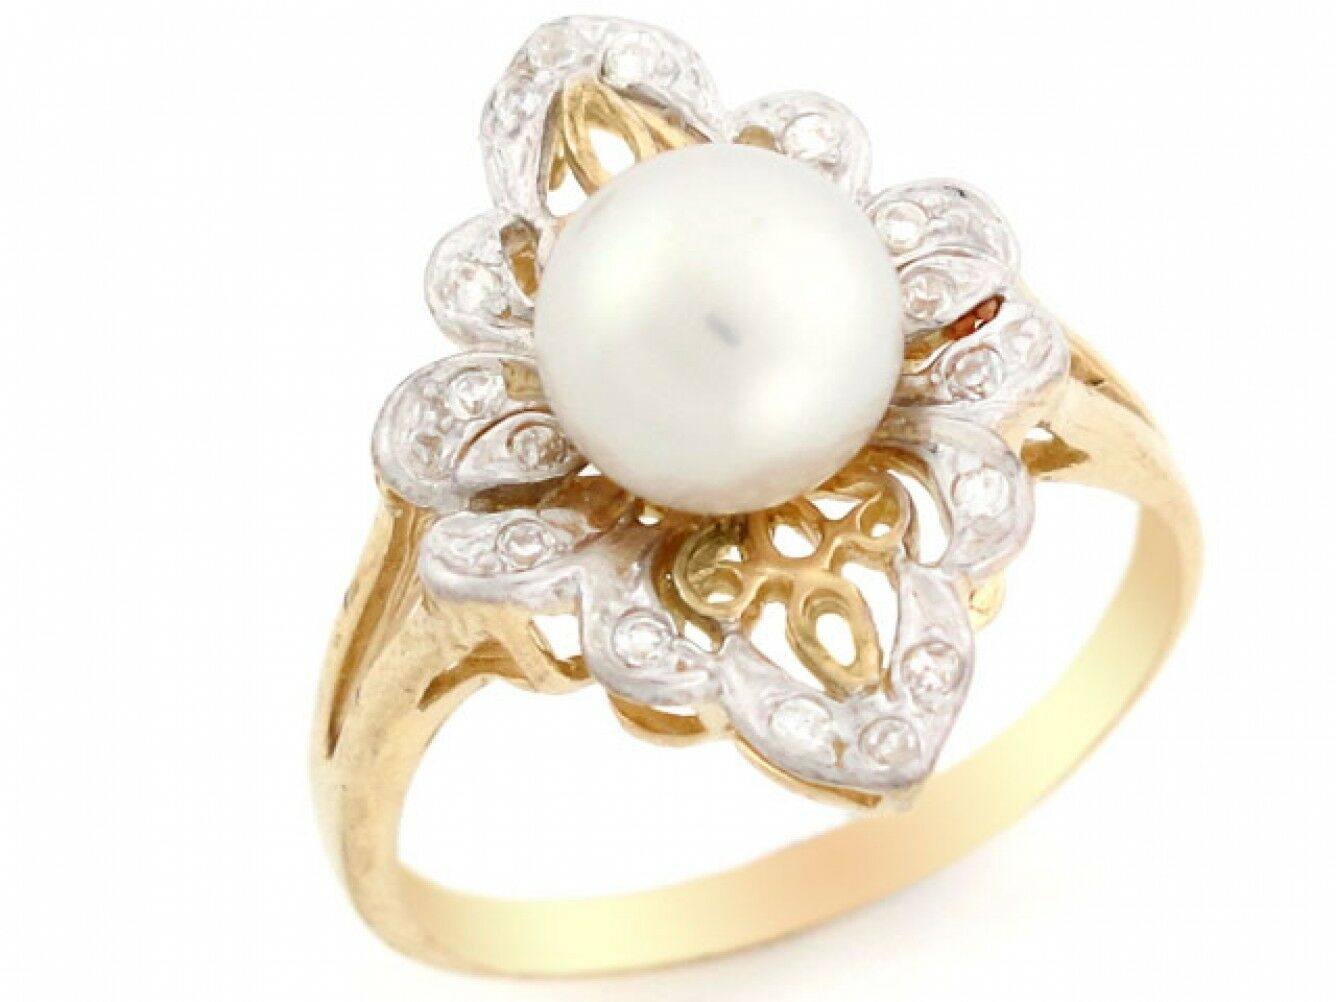 10k or 14k Two Tone gold Filigree Solitaire Cultured Pearl Fancy Ring Jewelry